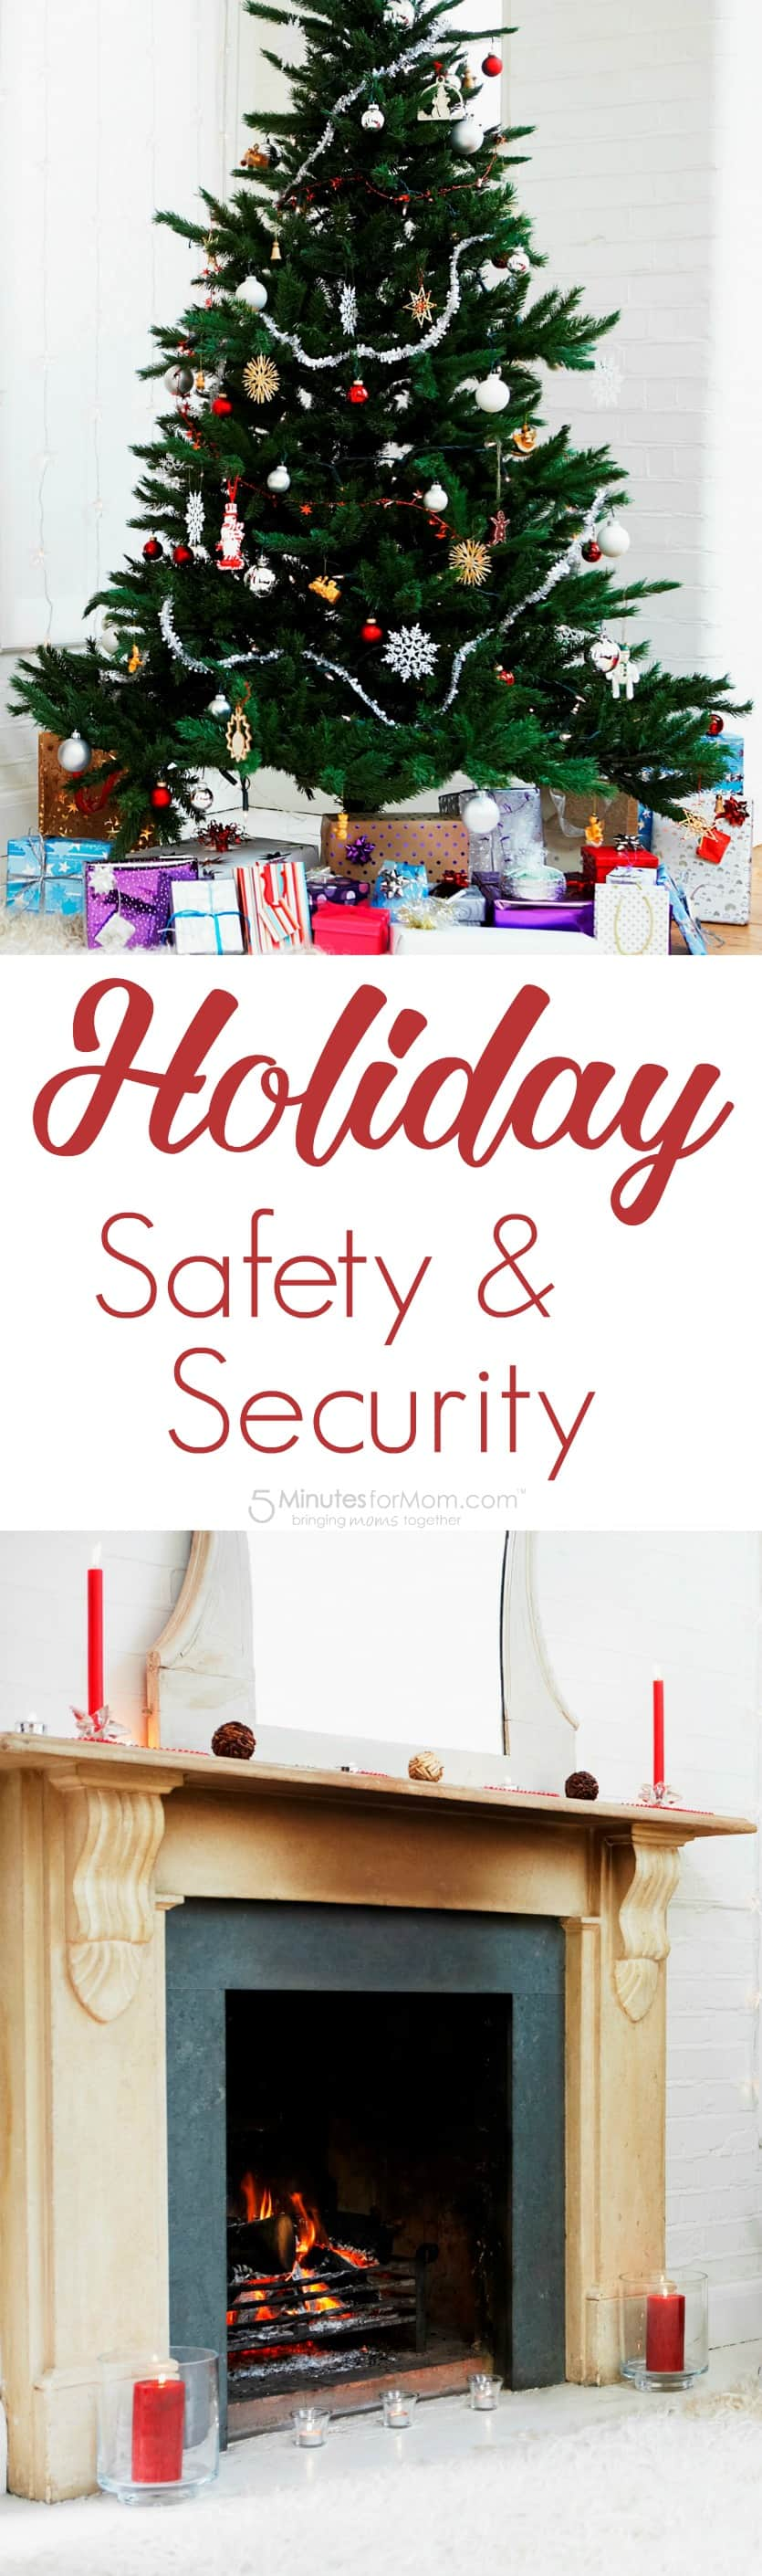 Holiday Safety and Security Tips